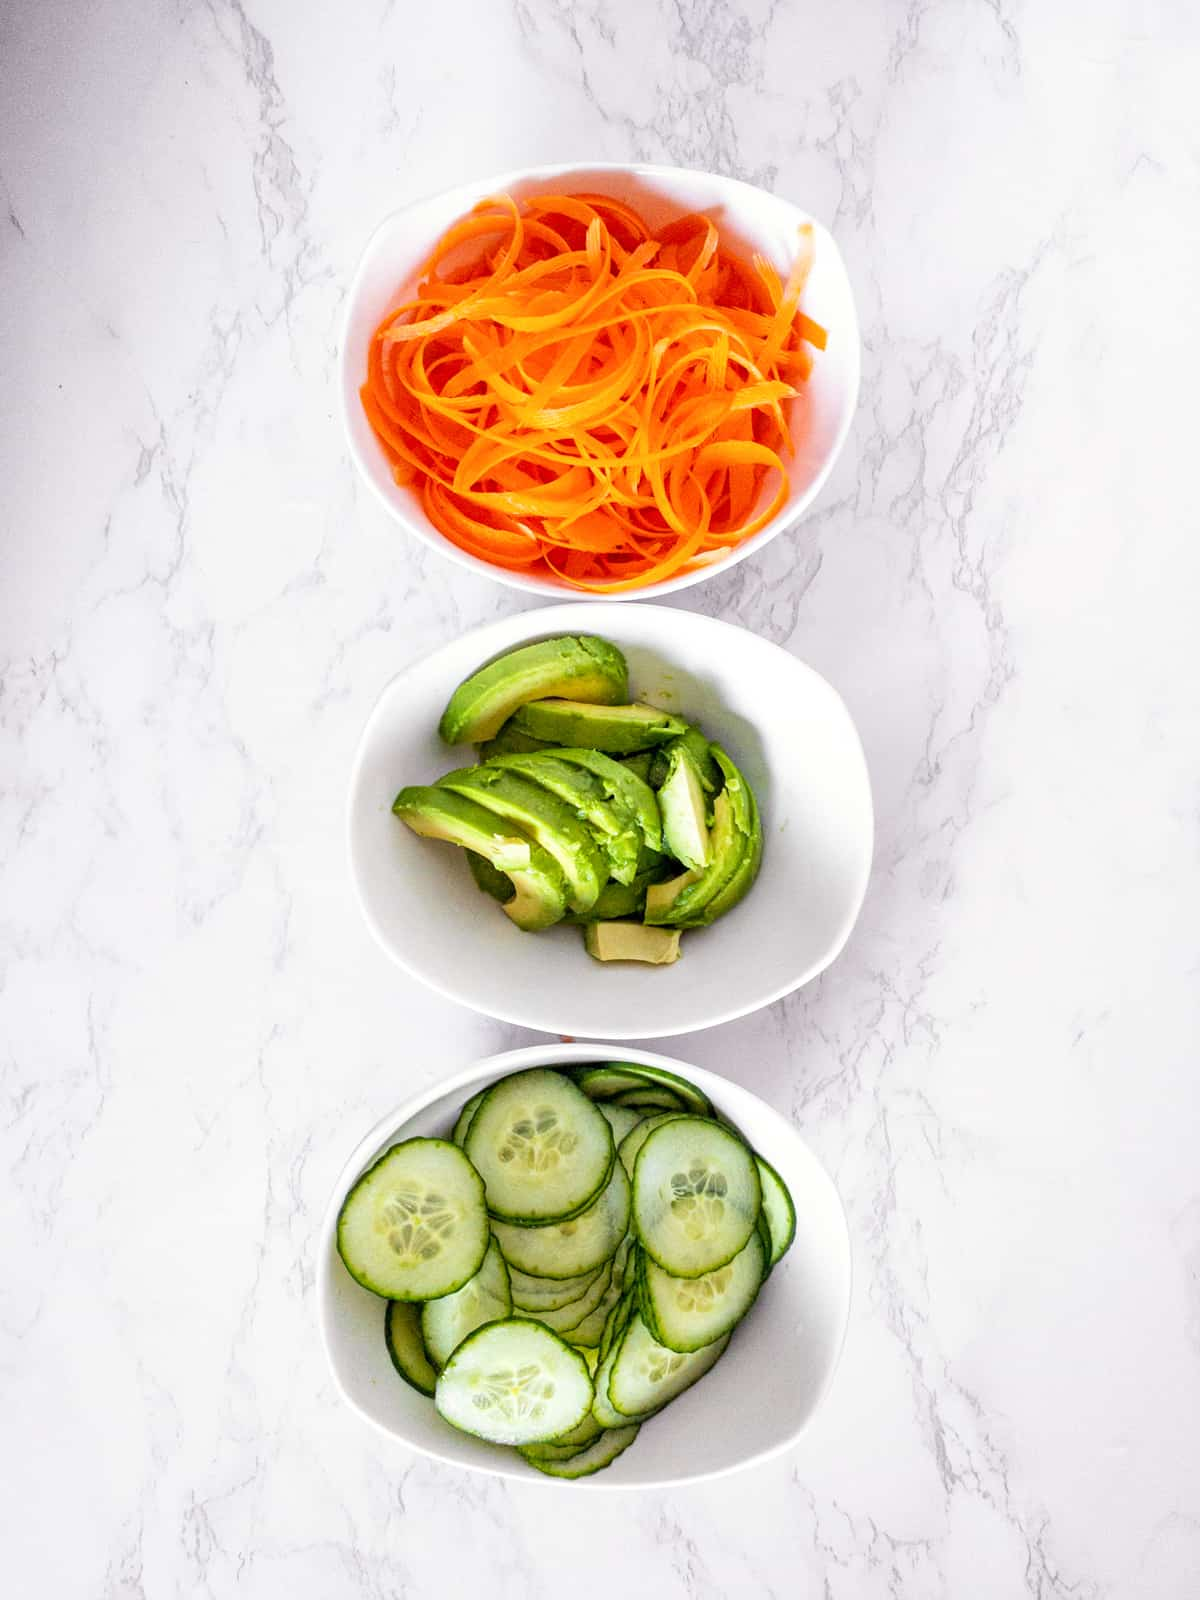 three small bowls on a marble countertop containing carrots, avocado, and cucumber